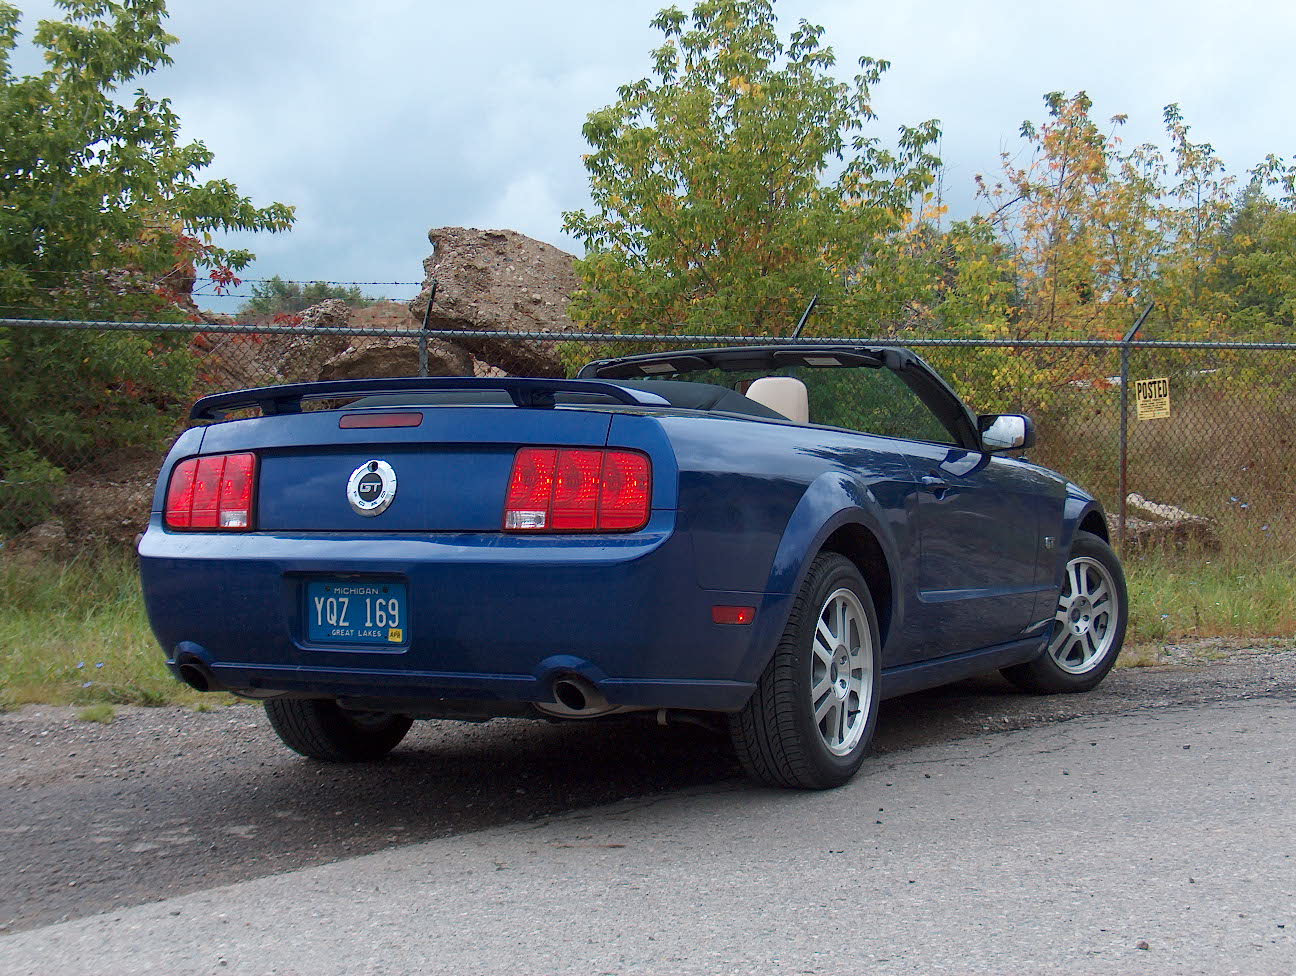 2005 Ford Mustang photo - 2